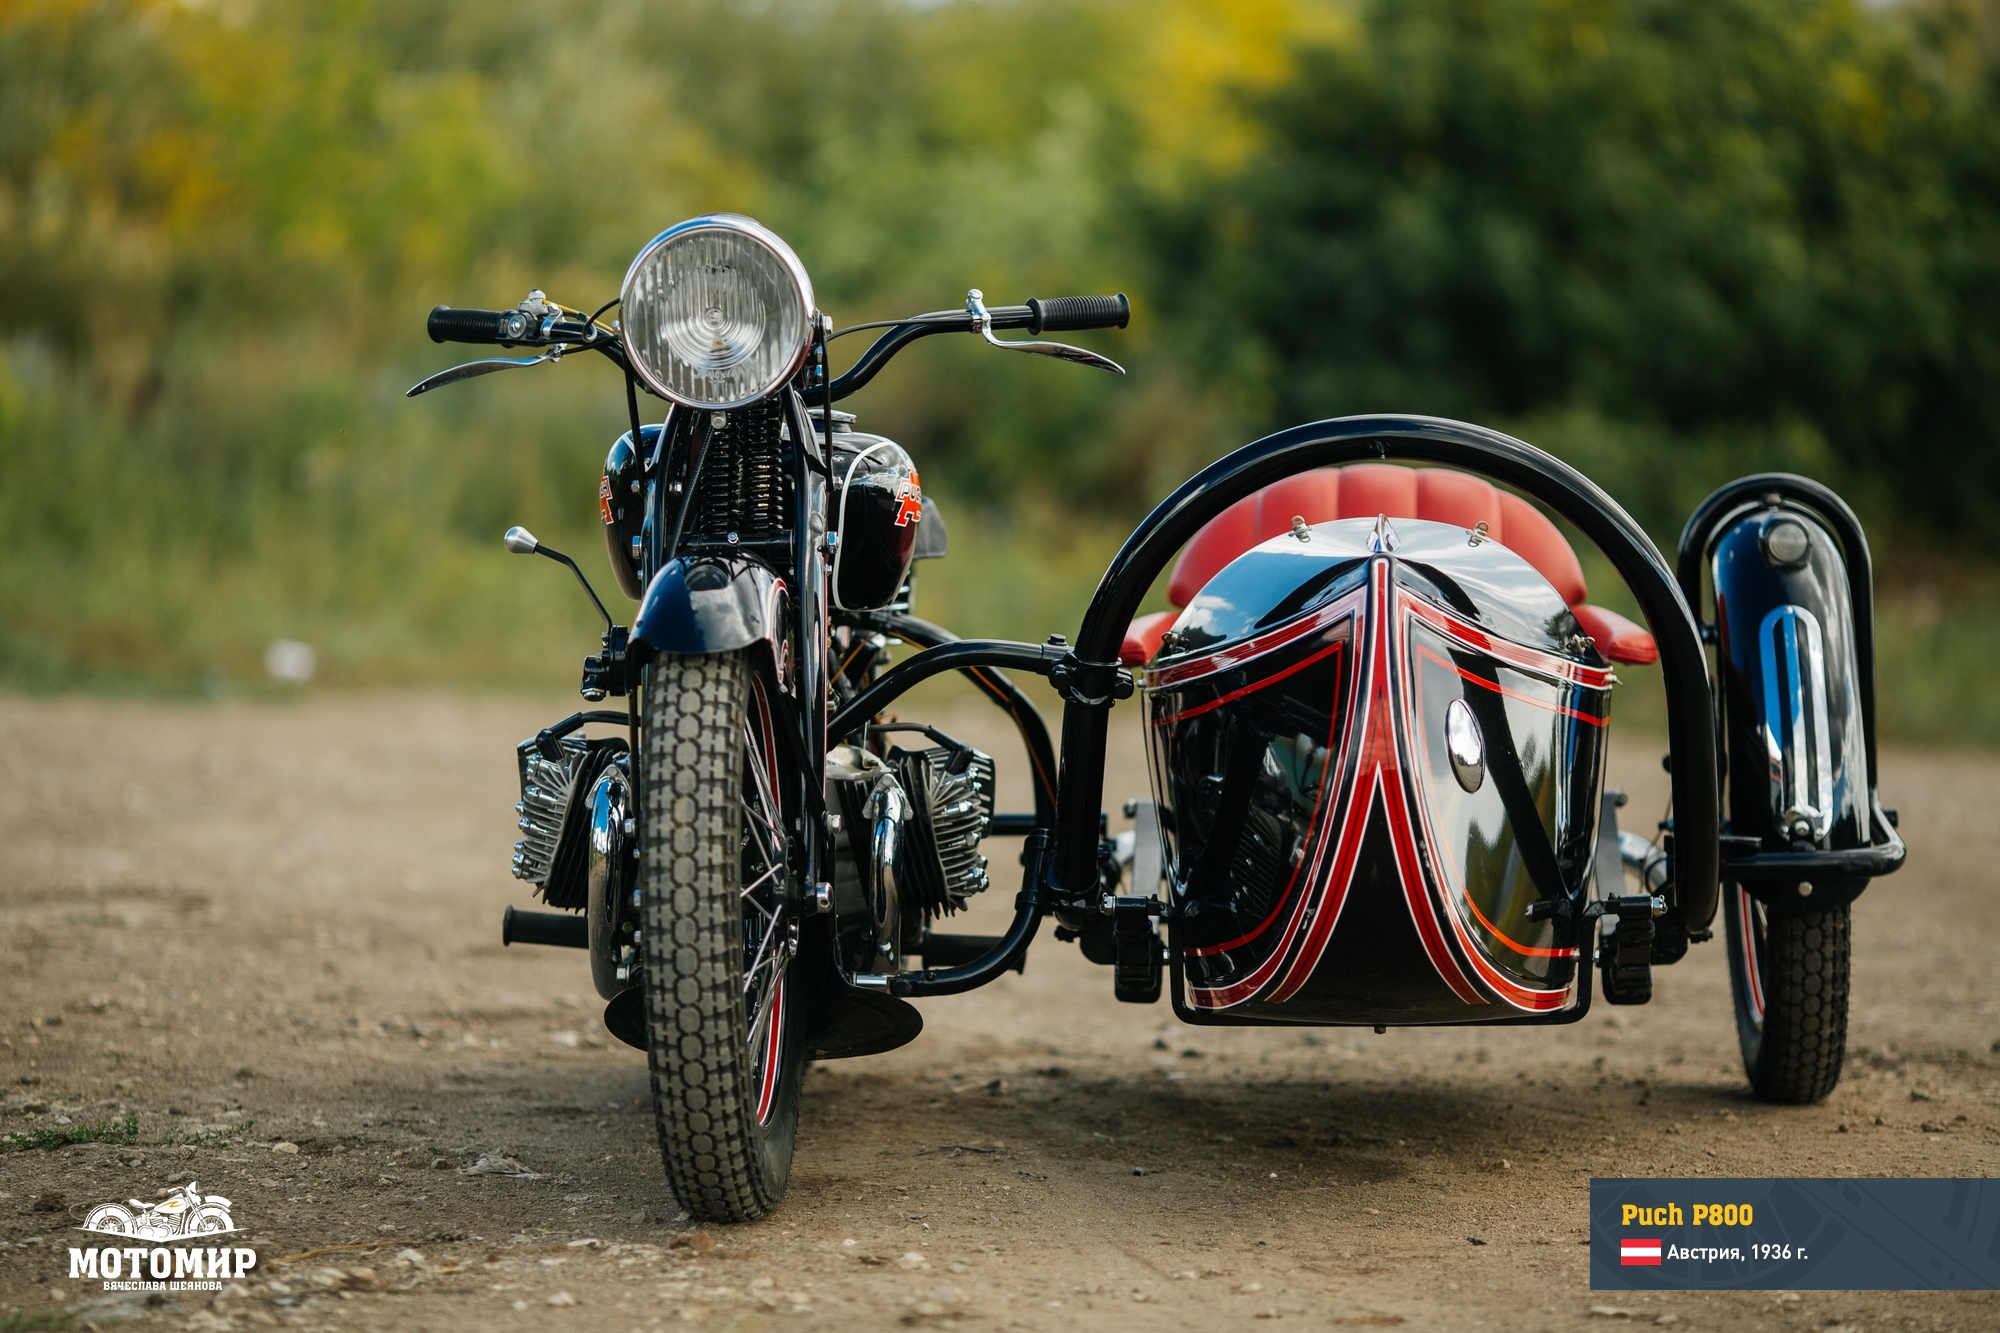 puch-p800-201510-web-07